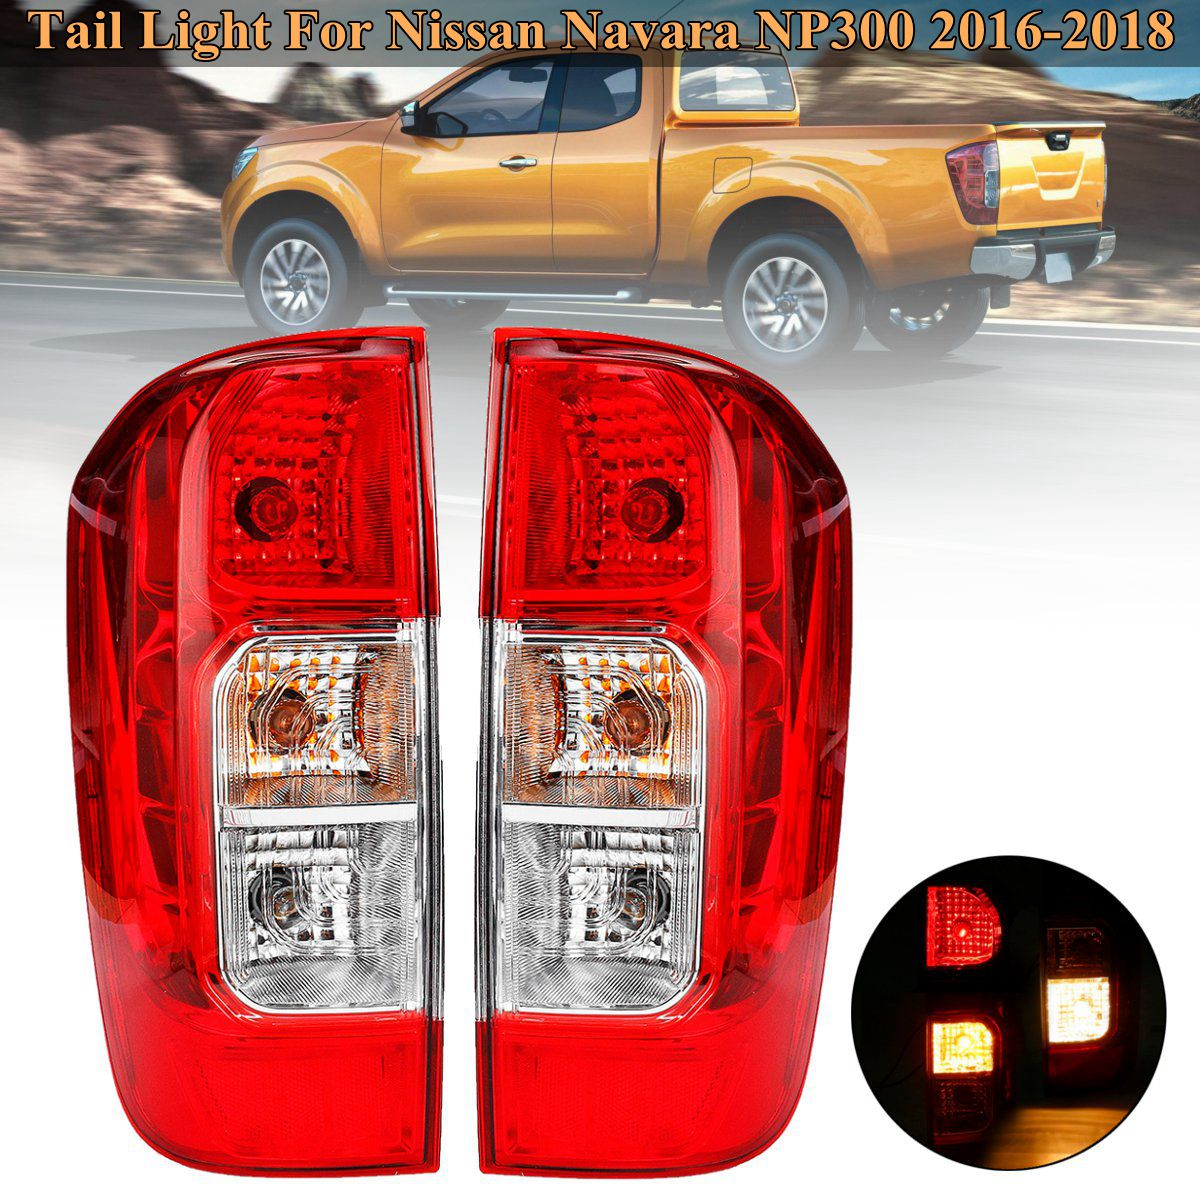 1Pcs Rear Tail Light Turn Light LEFT/RIGHT Driver Passenger Side For For Nissan Navara NP300 2016 2017 2018 Car Styling 1pcs 6ru 945 096 rh tail light taillamp rear light assembly right side for volkswagen polo sedan vento 2010 2014